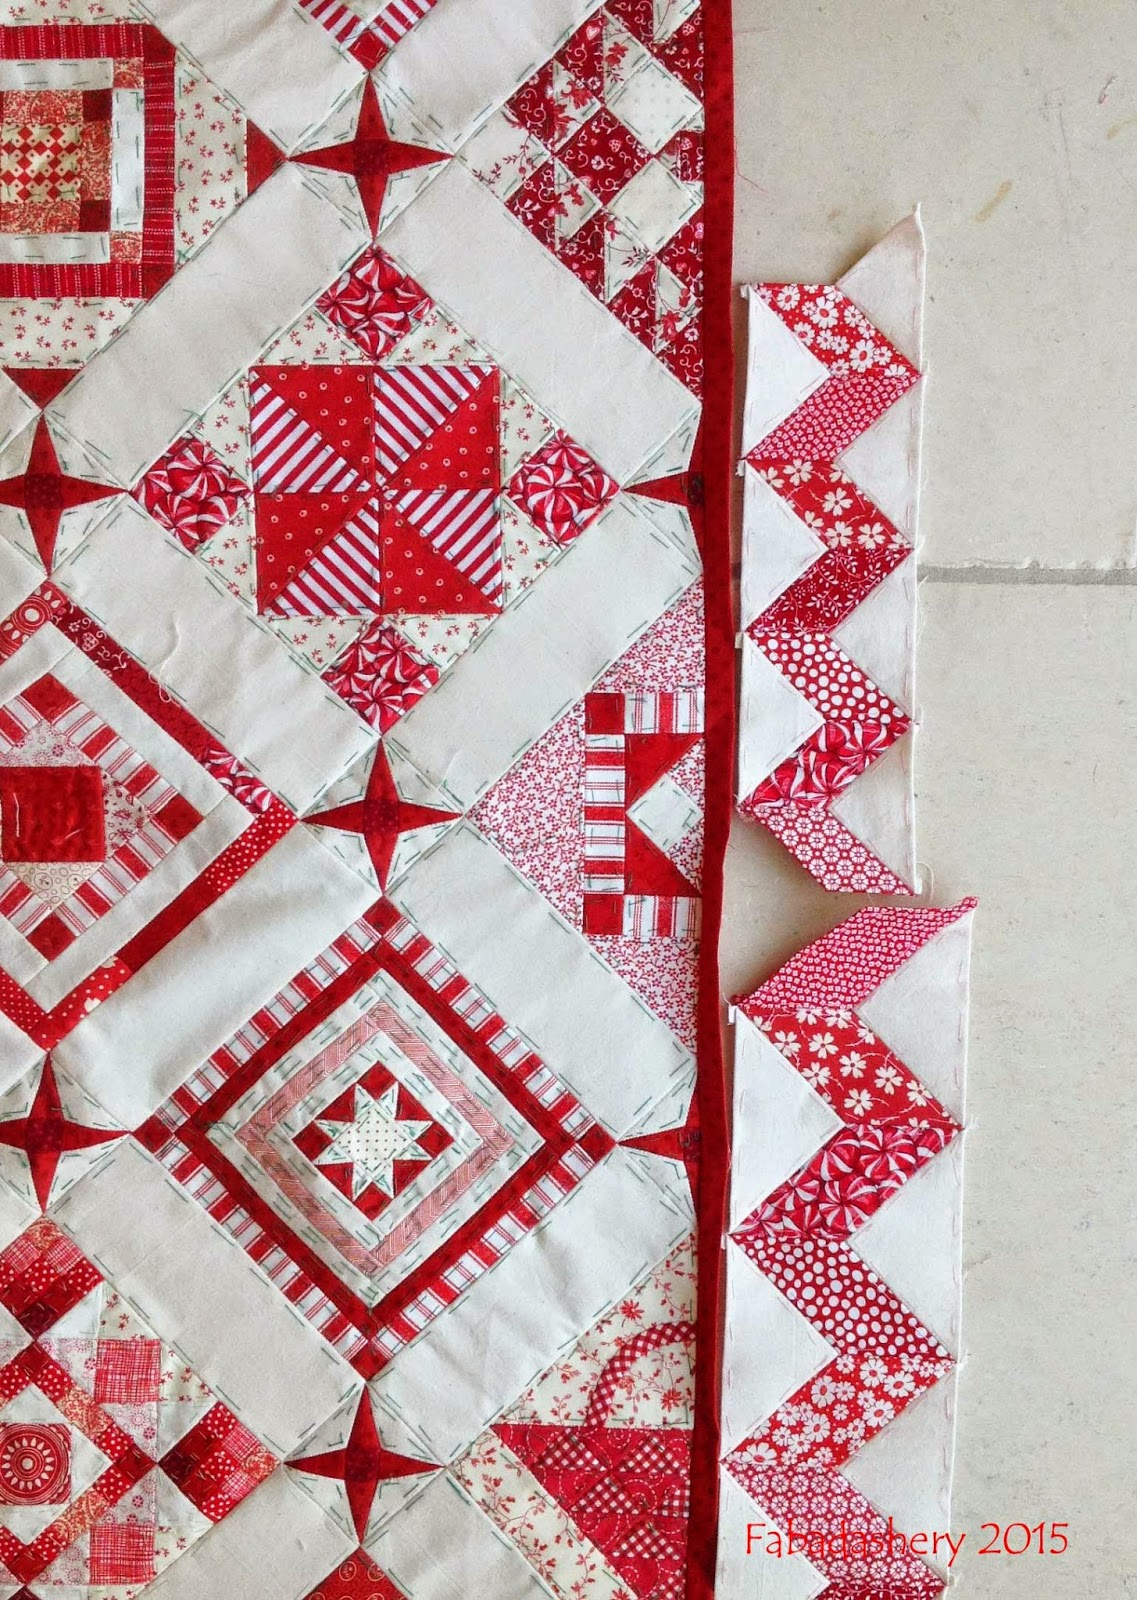 Nearly Insane Quilt - Small Red with White Zig Zag Border